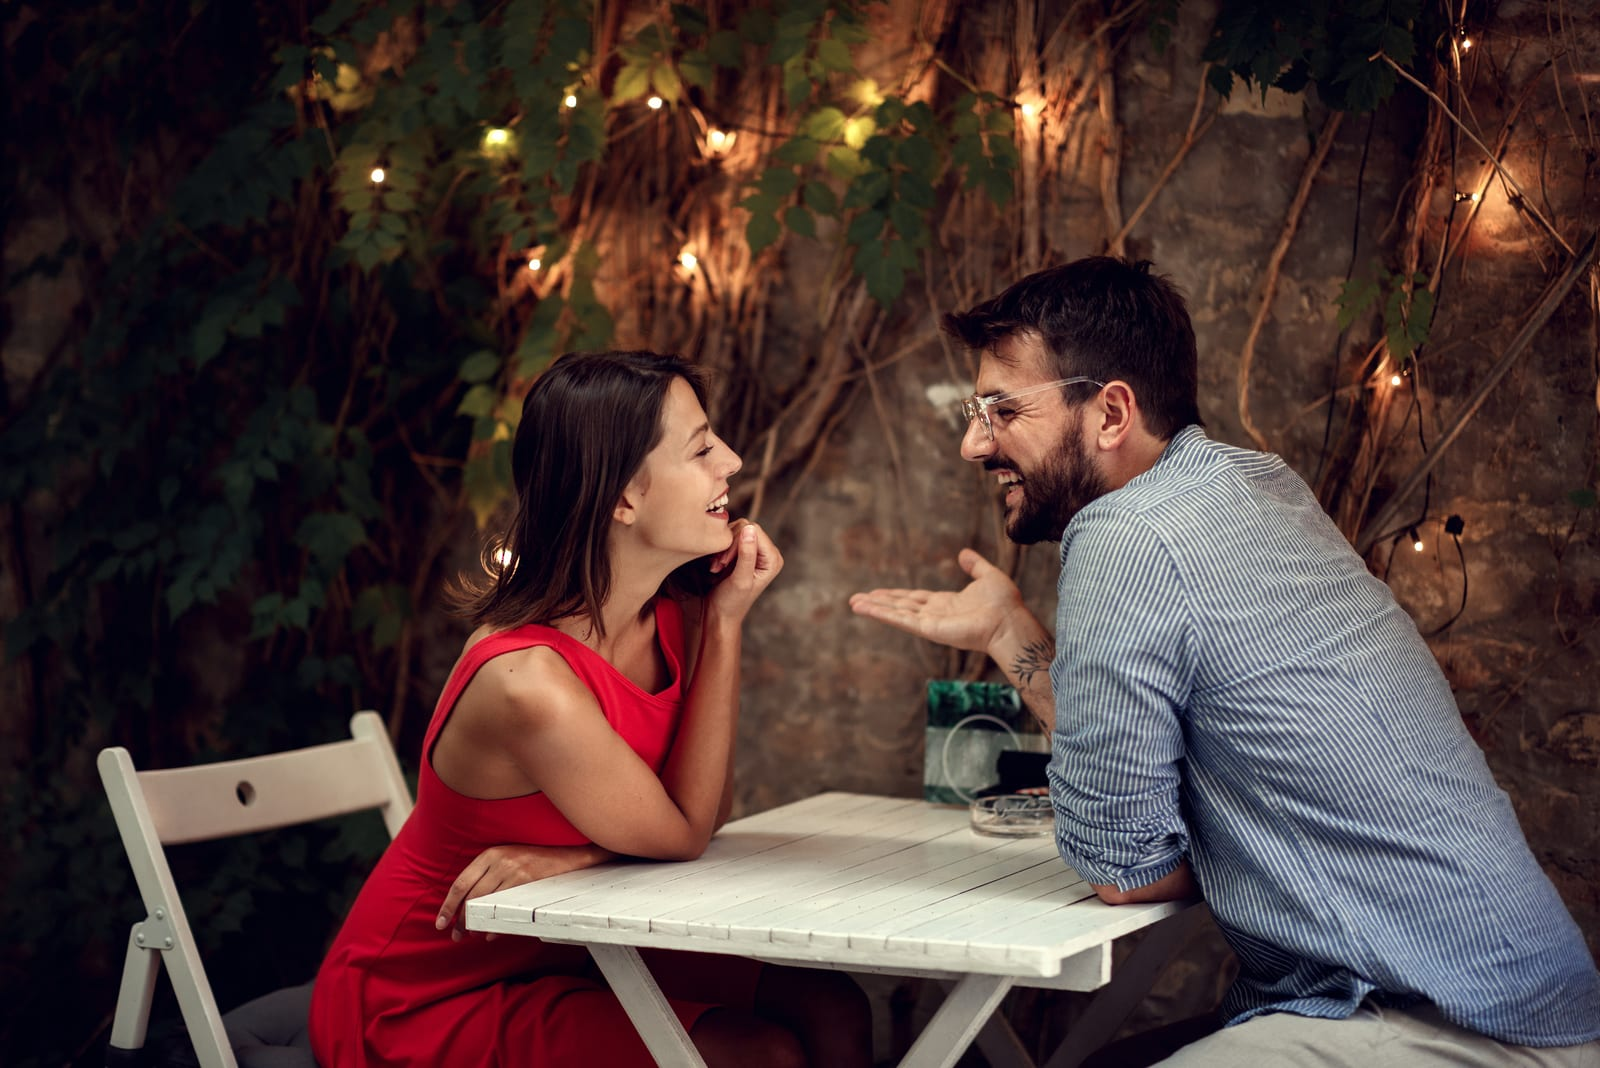 smiling couple flirting by the table